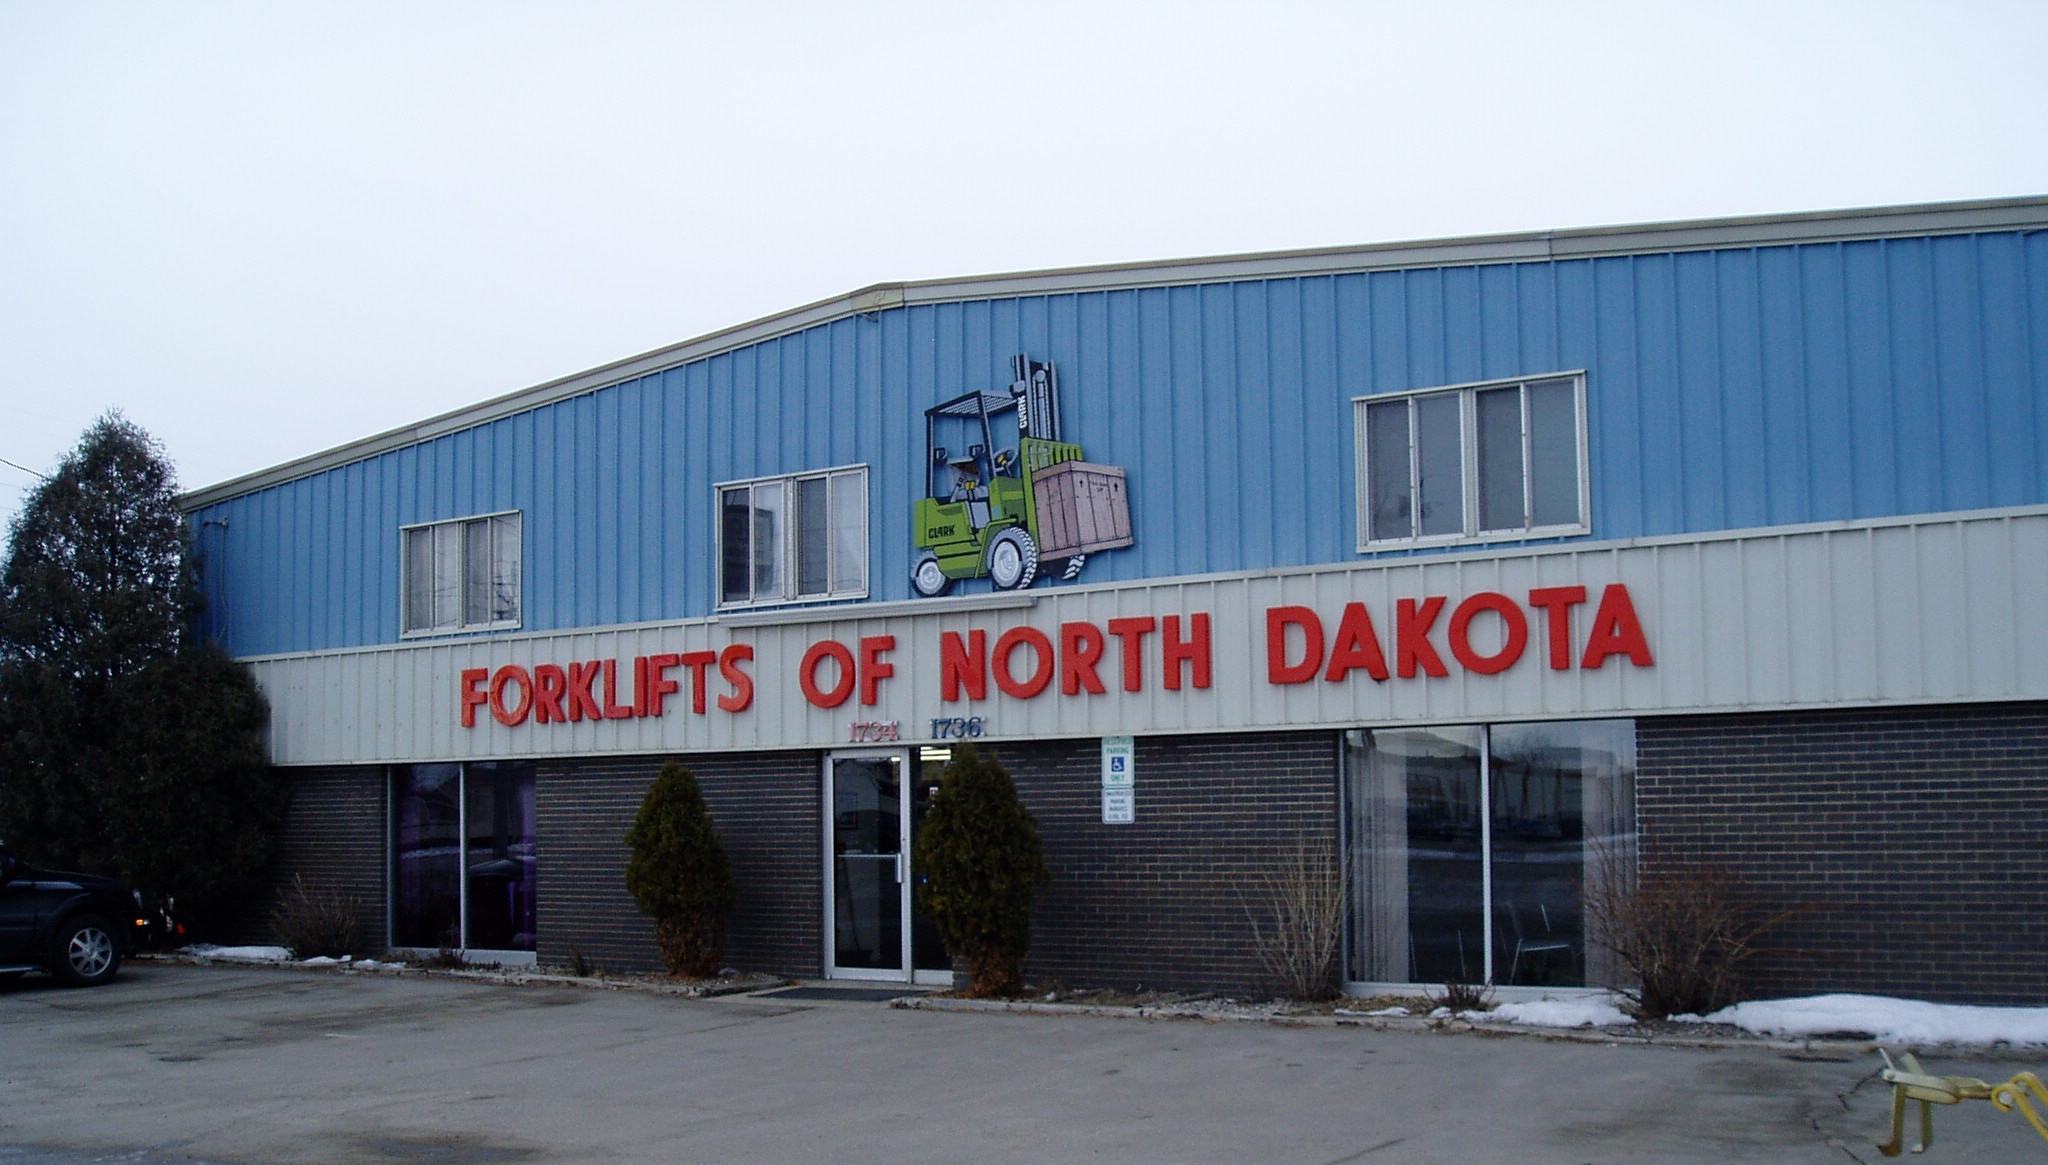 Forklifts of Fargo. Forklifts of North Dakota. Fargo Forklift.